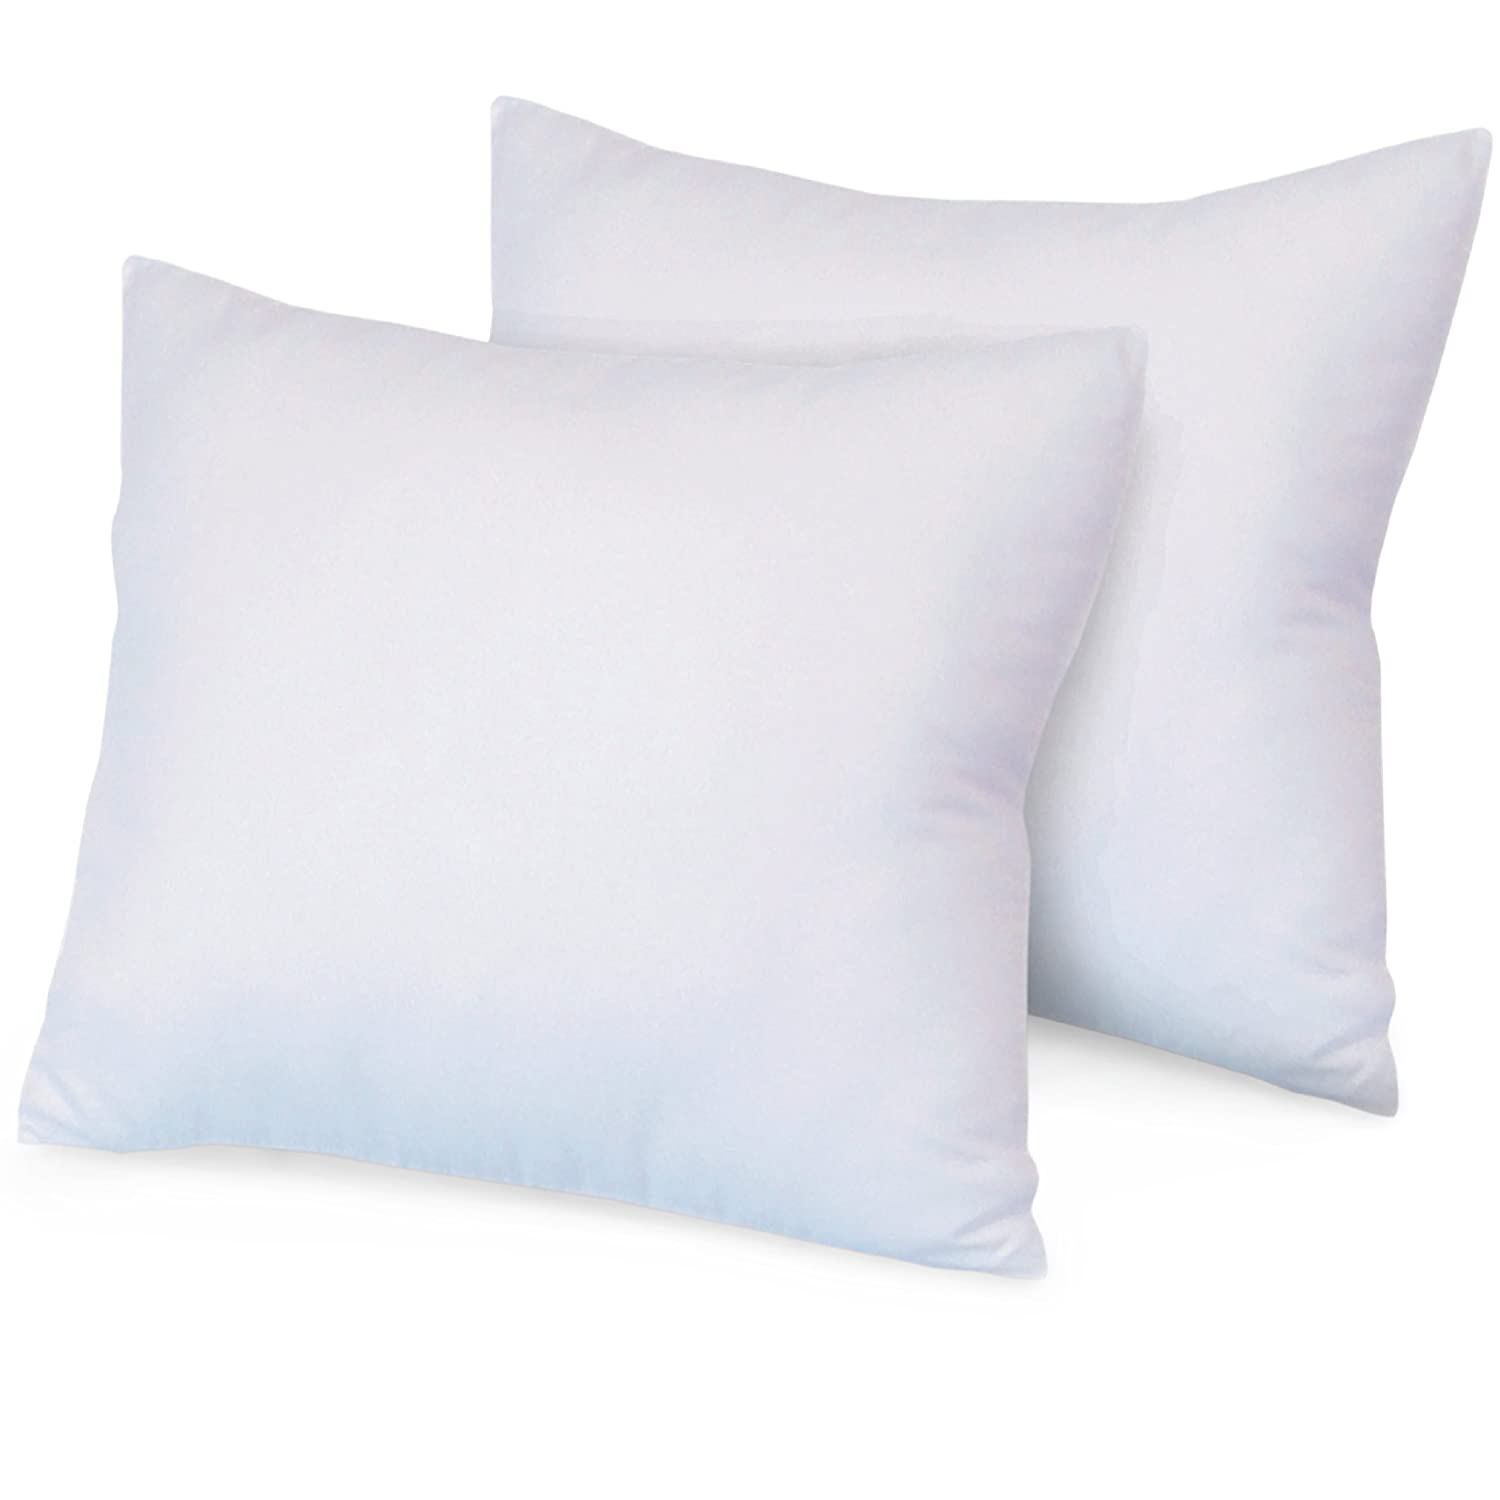 Nature S Rest Luxurious 28 By 28 Inch Euro Square Pillows